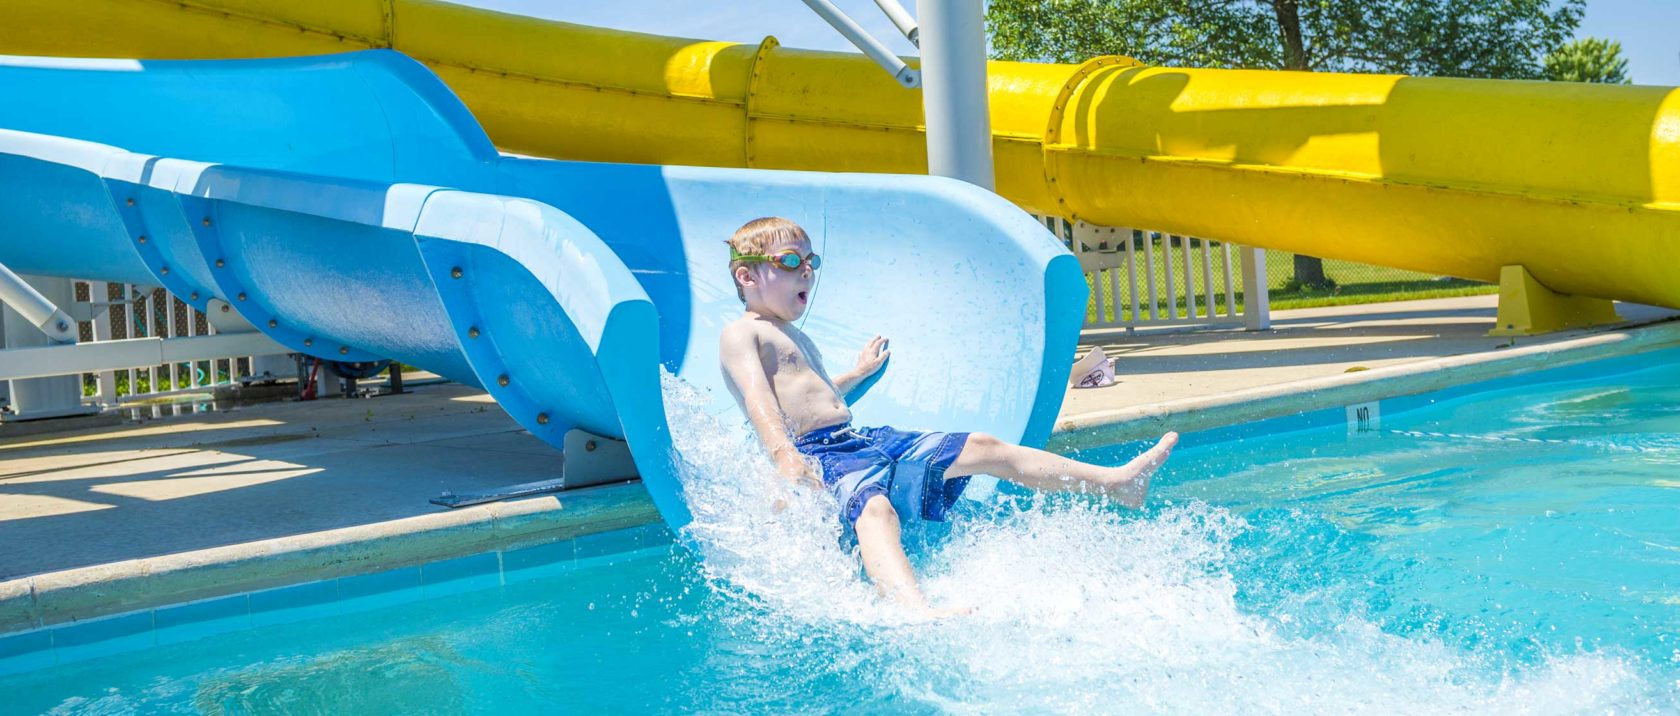 Boy camper sliding down water slide